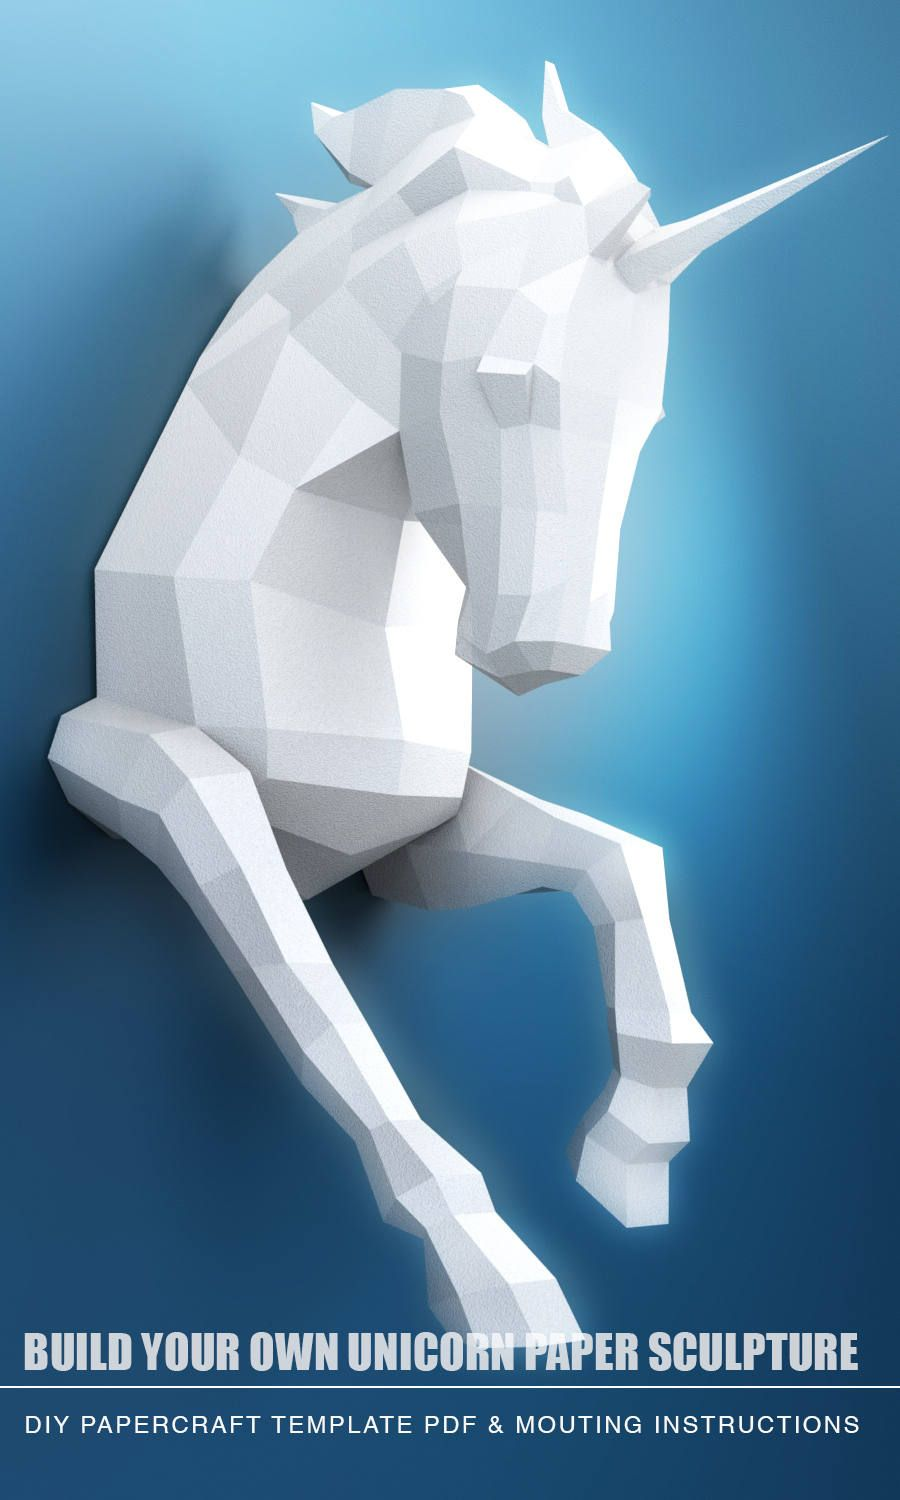 3d Create Your Own Room: Unicorn PAPERCRAFT PDF Papercraft Unicorn Model Unicorn